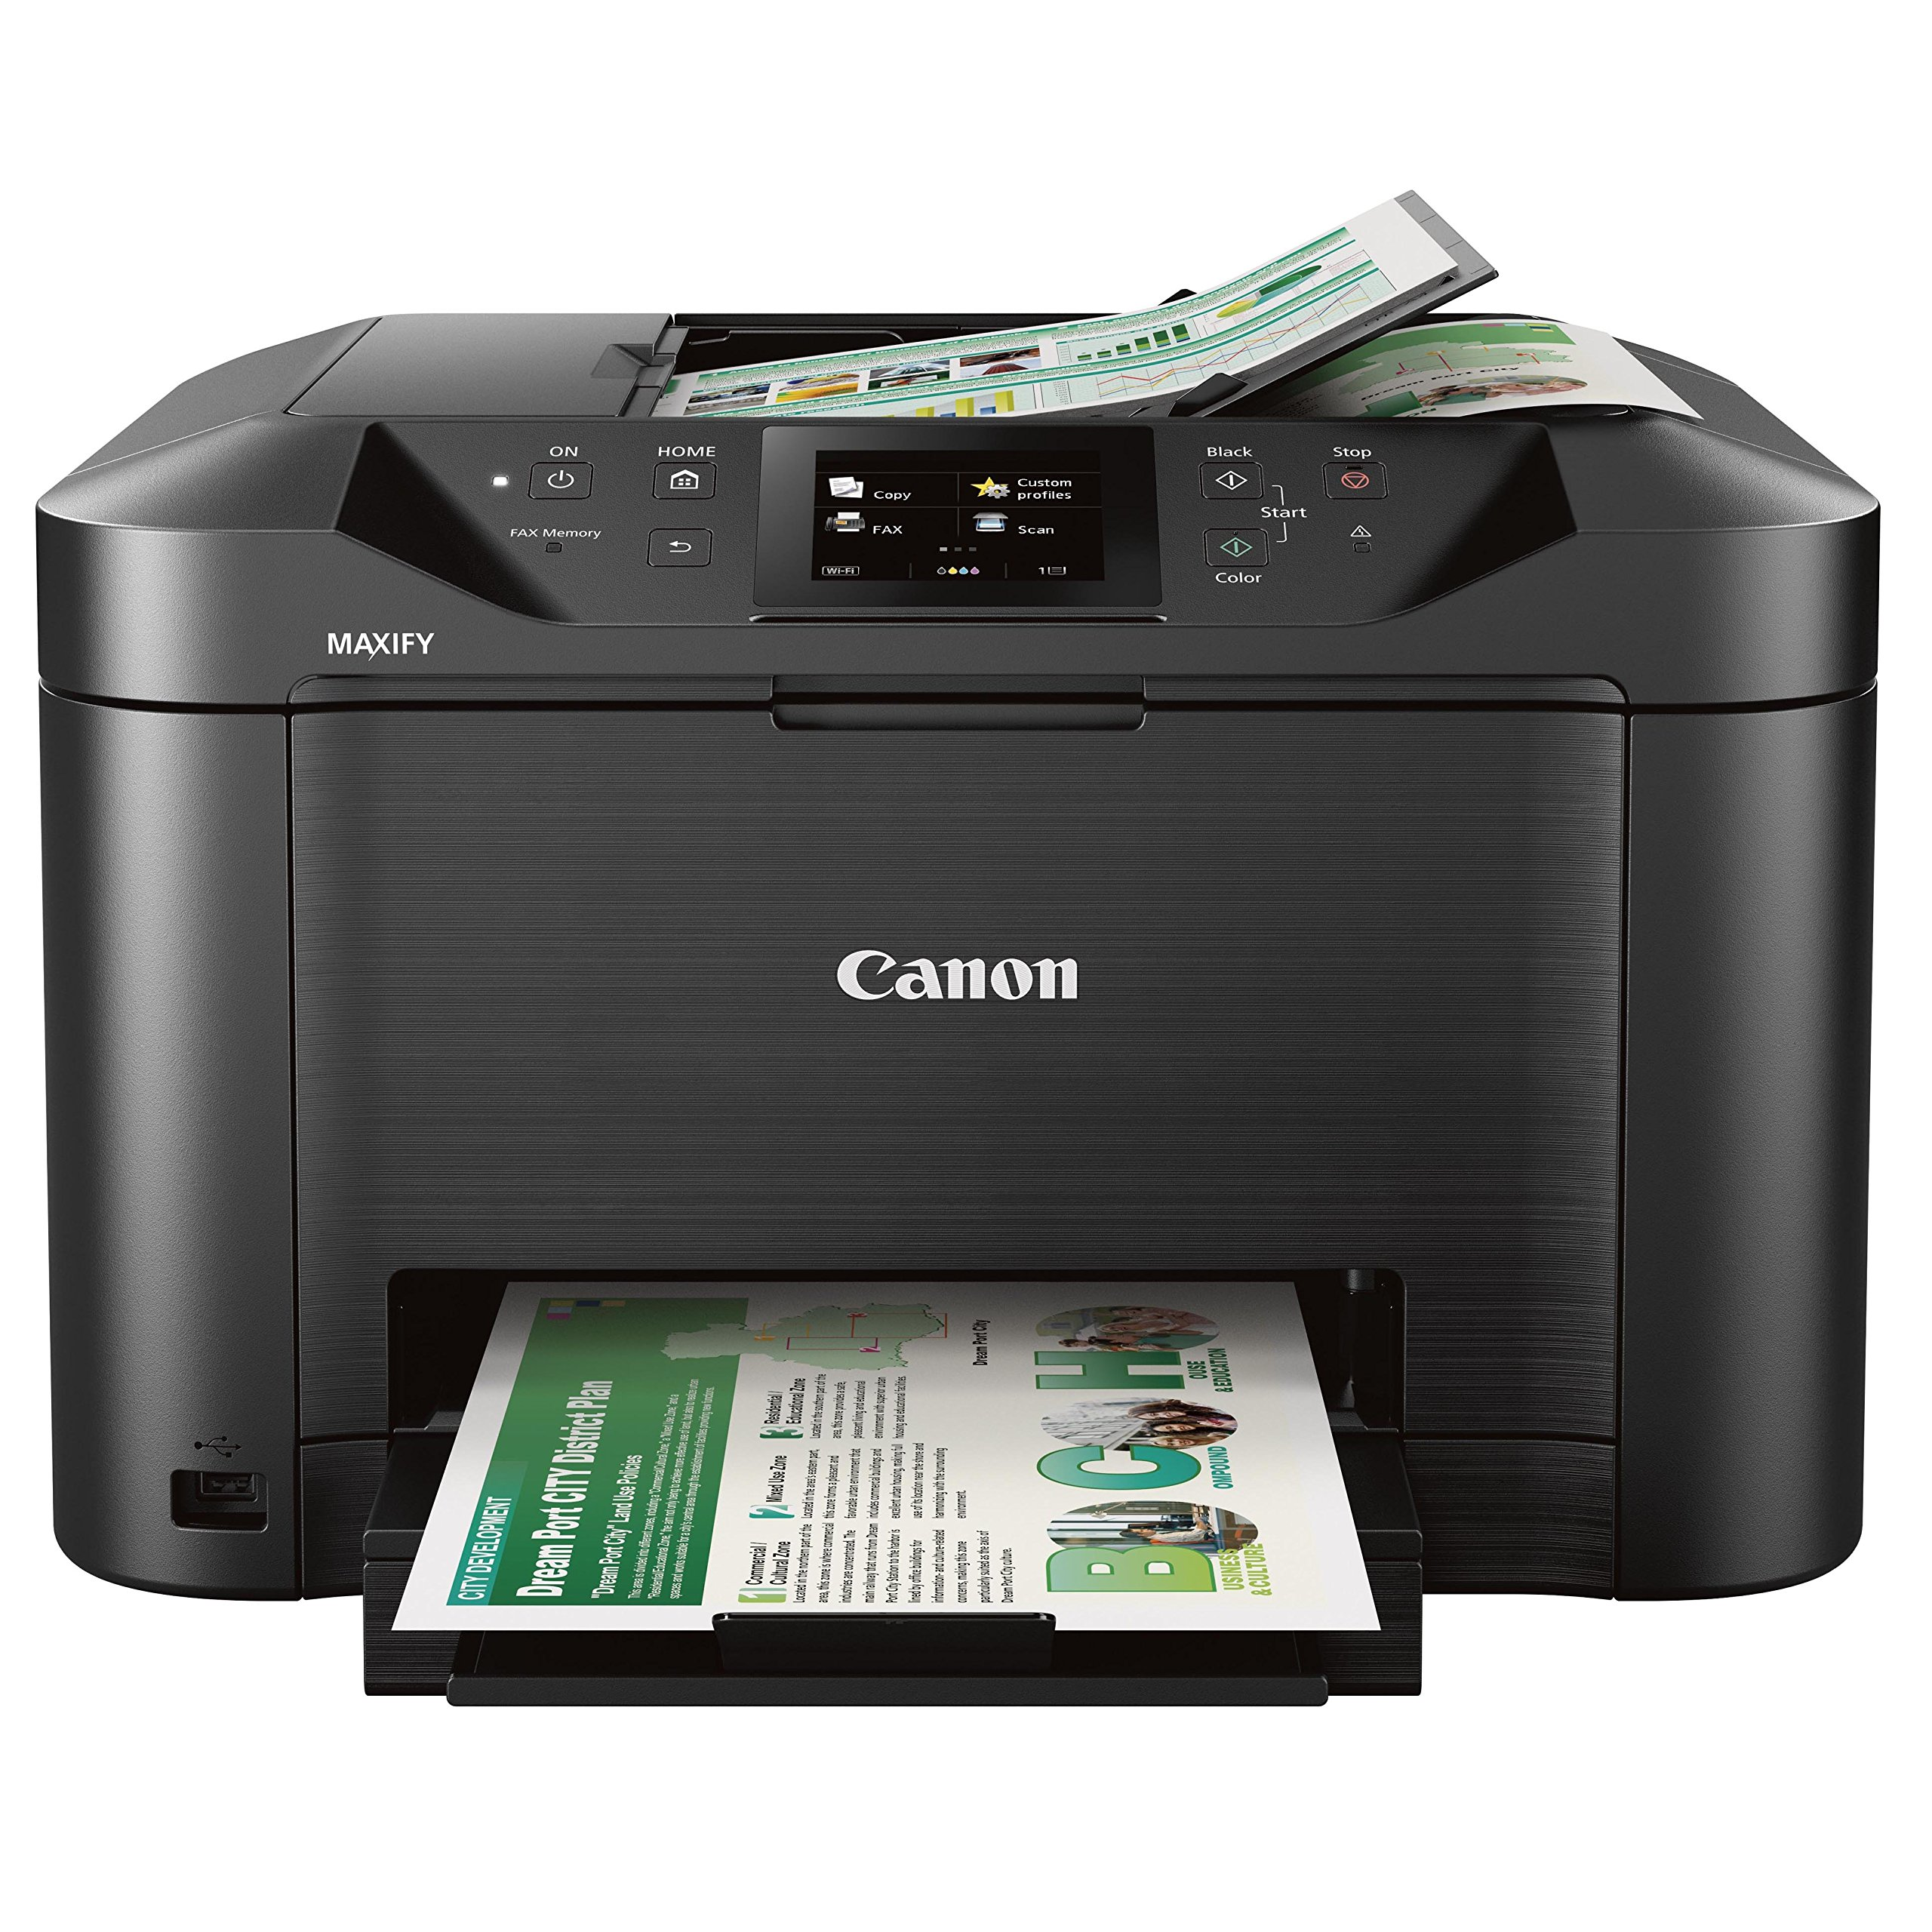 Canon Office and Business MB5120 All-in-One Printer, Scanner, Copier and Fax, with Mobile and Duplex Printing by Canon